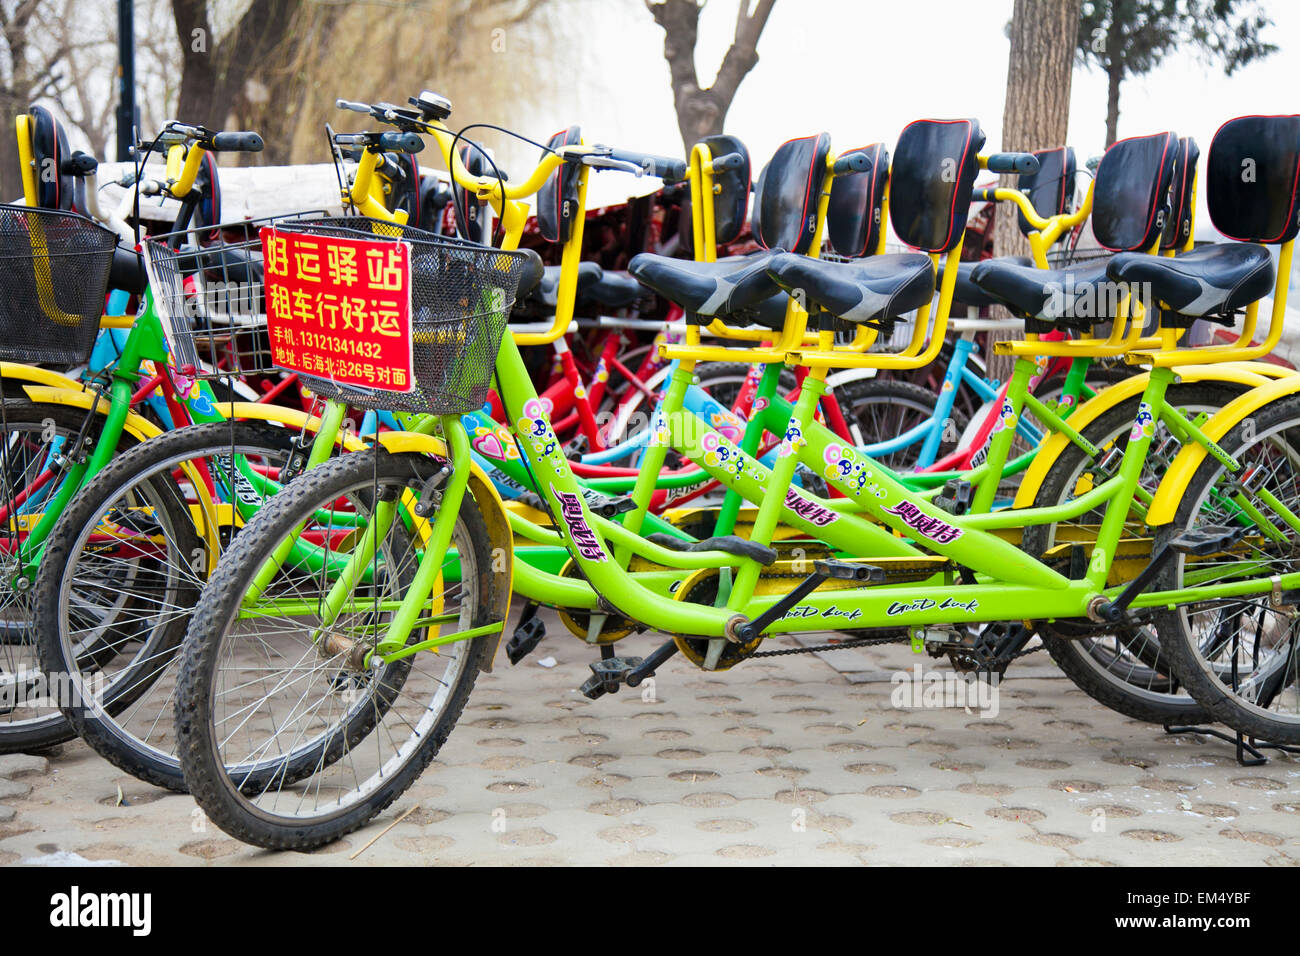 Bicycles for rent at Houhai Park; Shichahai, Beijing, China - Stock Image